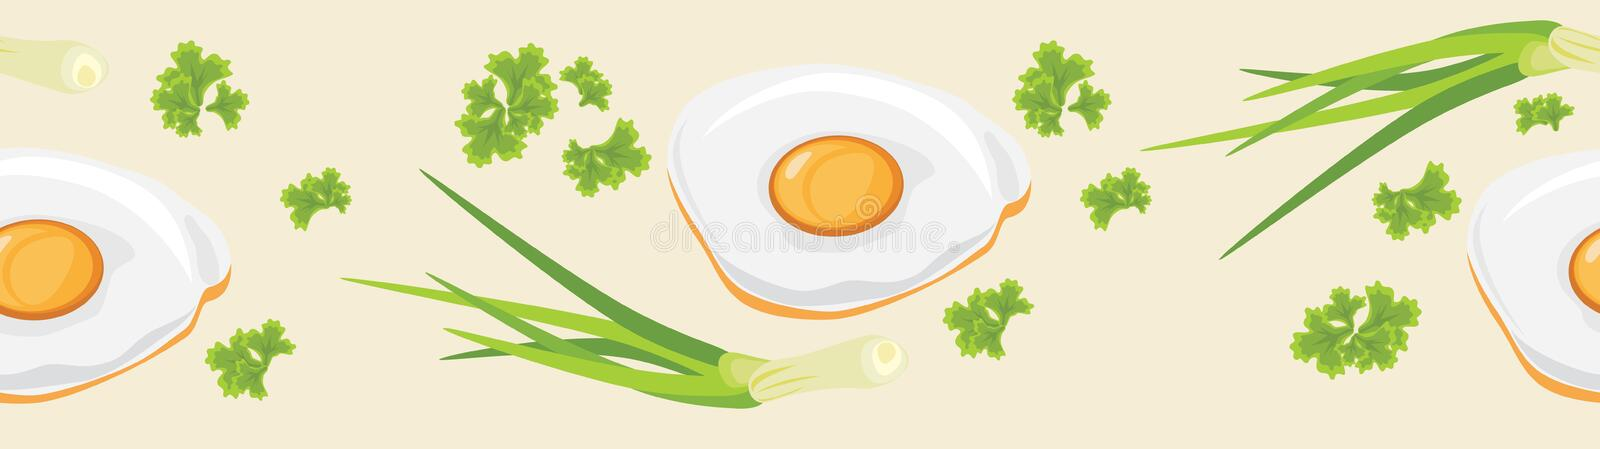 Fried eggs. Seamless banner. Vector royalty free stock photos